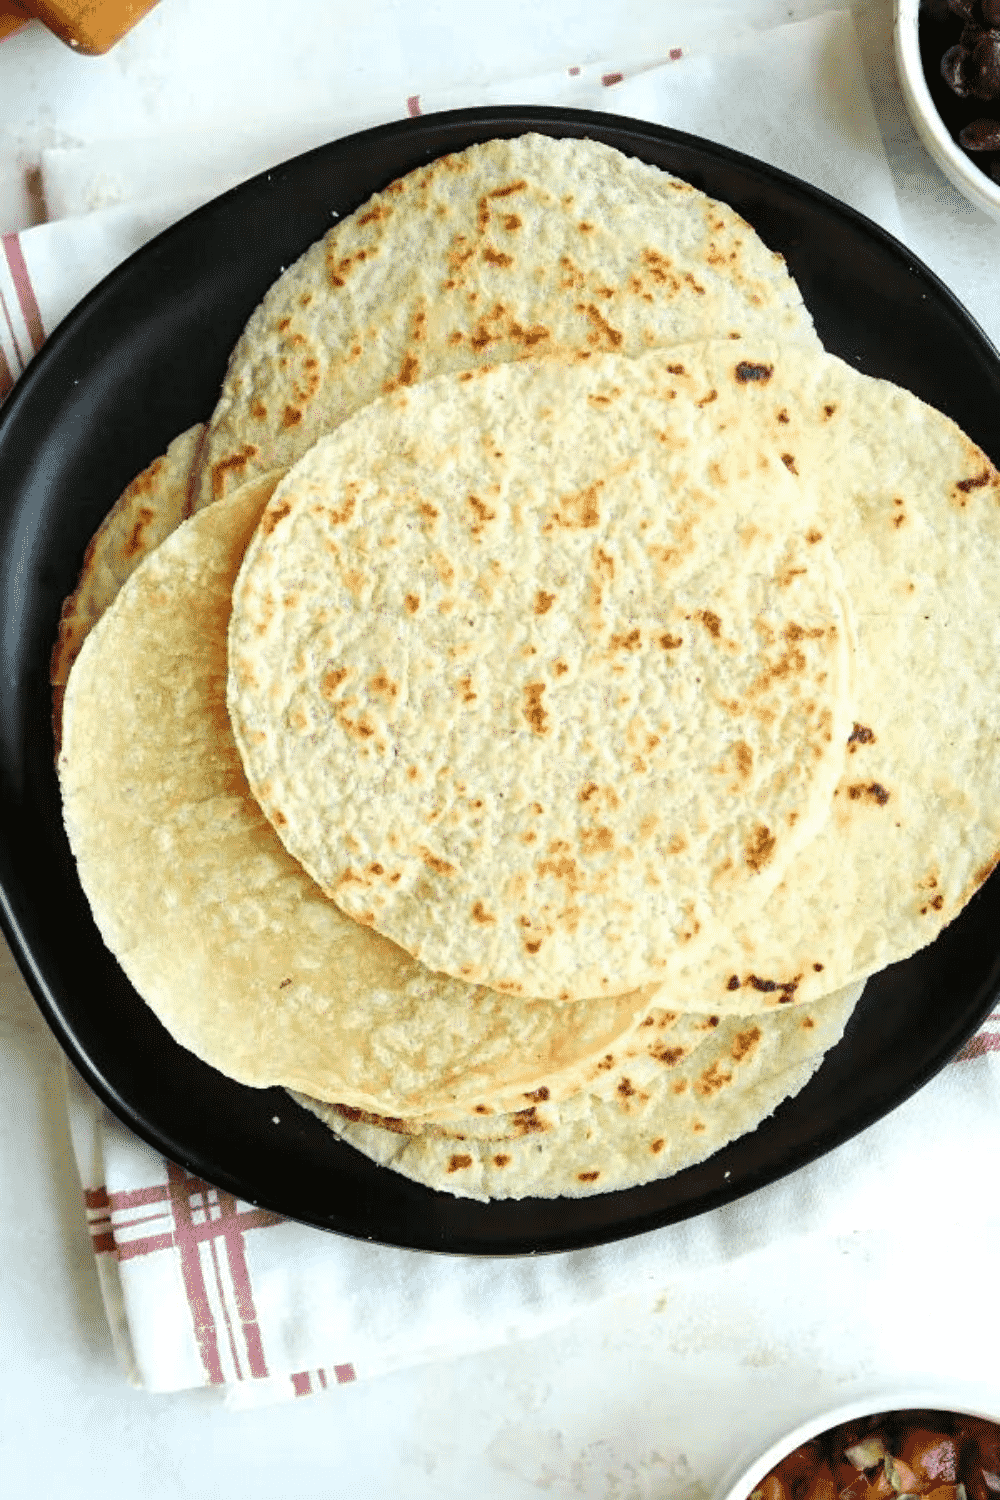 A bunch of keto tortillas stacked on top of each other on a black plate.